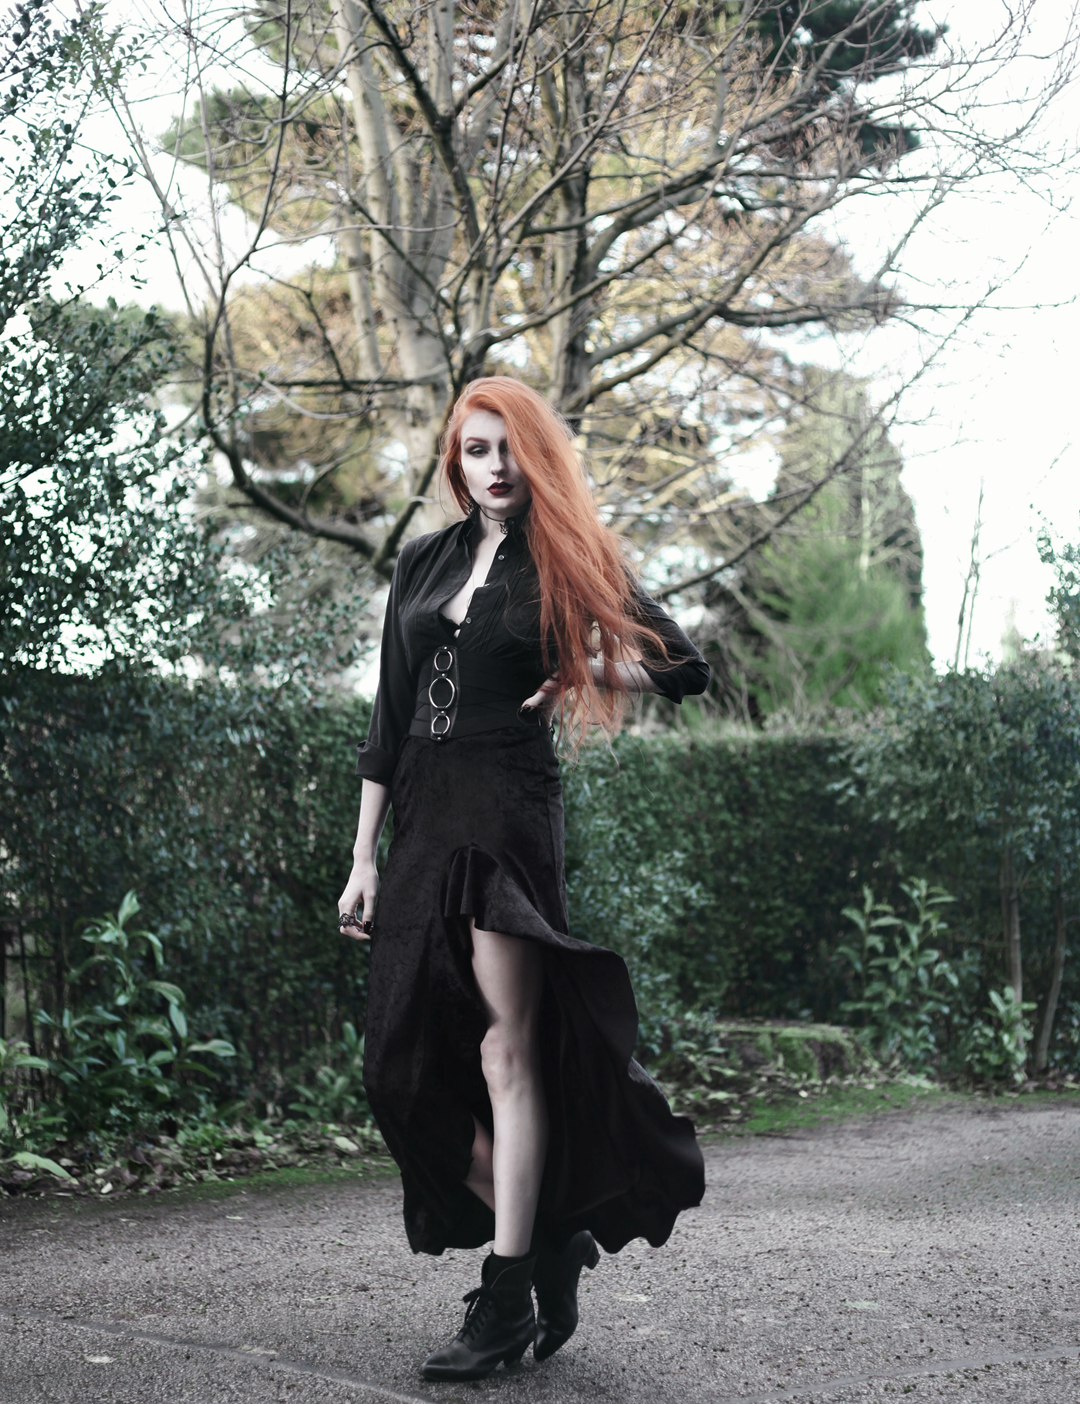 Olivia Emily wears Black Shirt, Asos Triple Ring Belt, Rokoko Velvet Ruffle High Low Maxi Skirt, and Vintage Pointed Boots